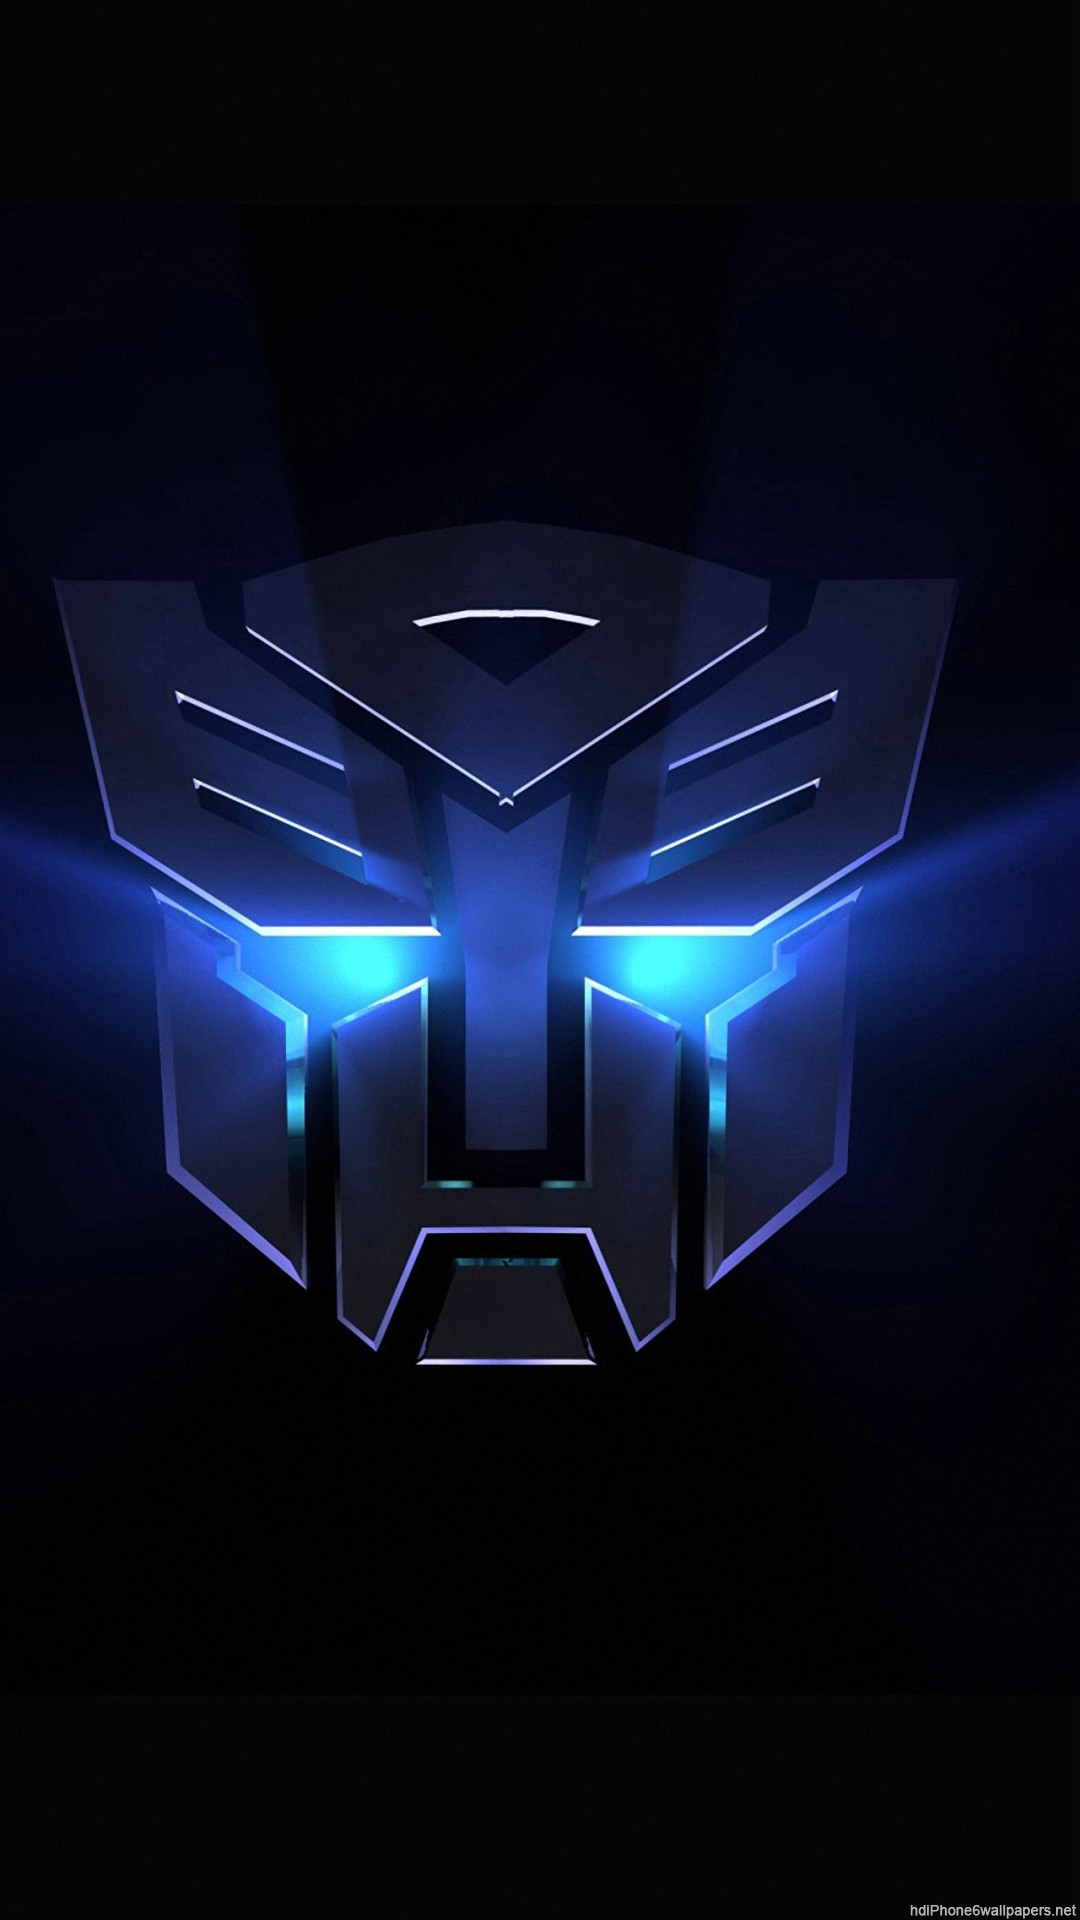 Transformers iphone wallpaper 66 images - Wallpaper iphone 6 full hd ...